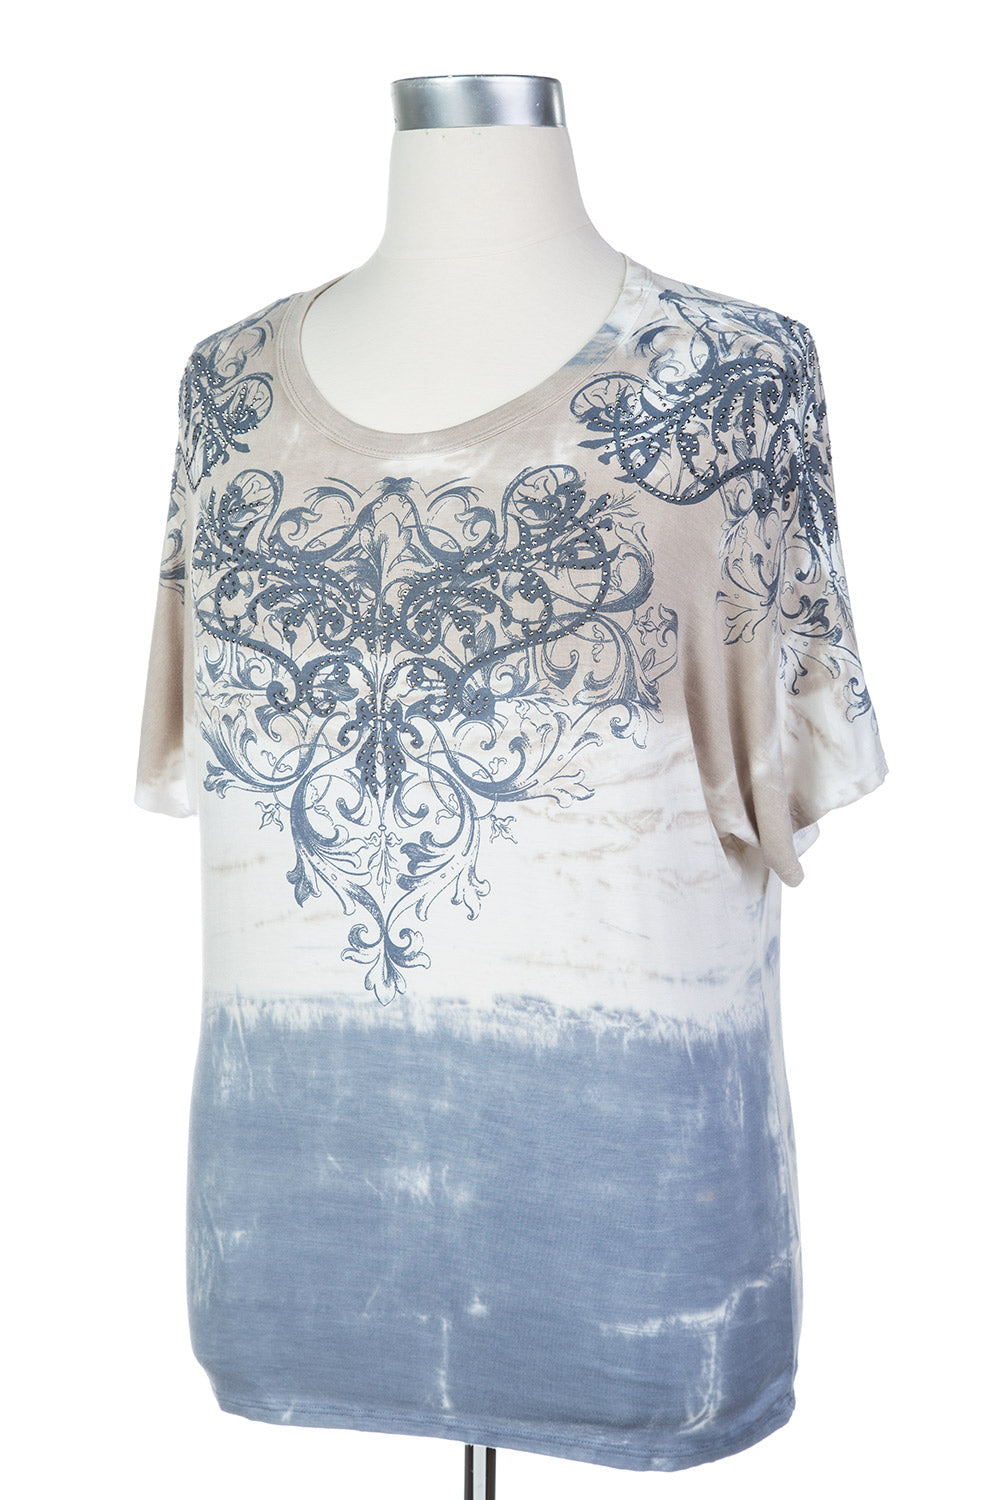 Type 2 Ornate Ombre Top